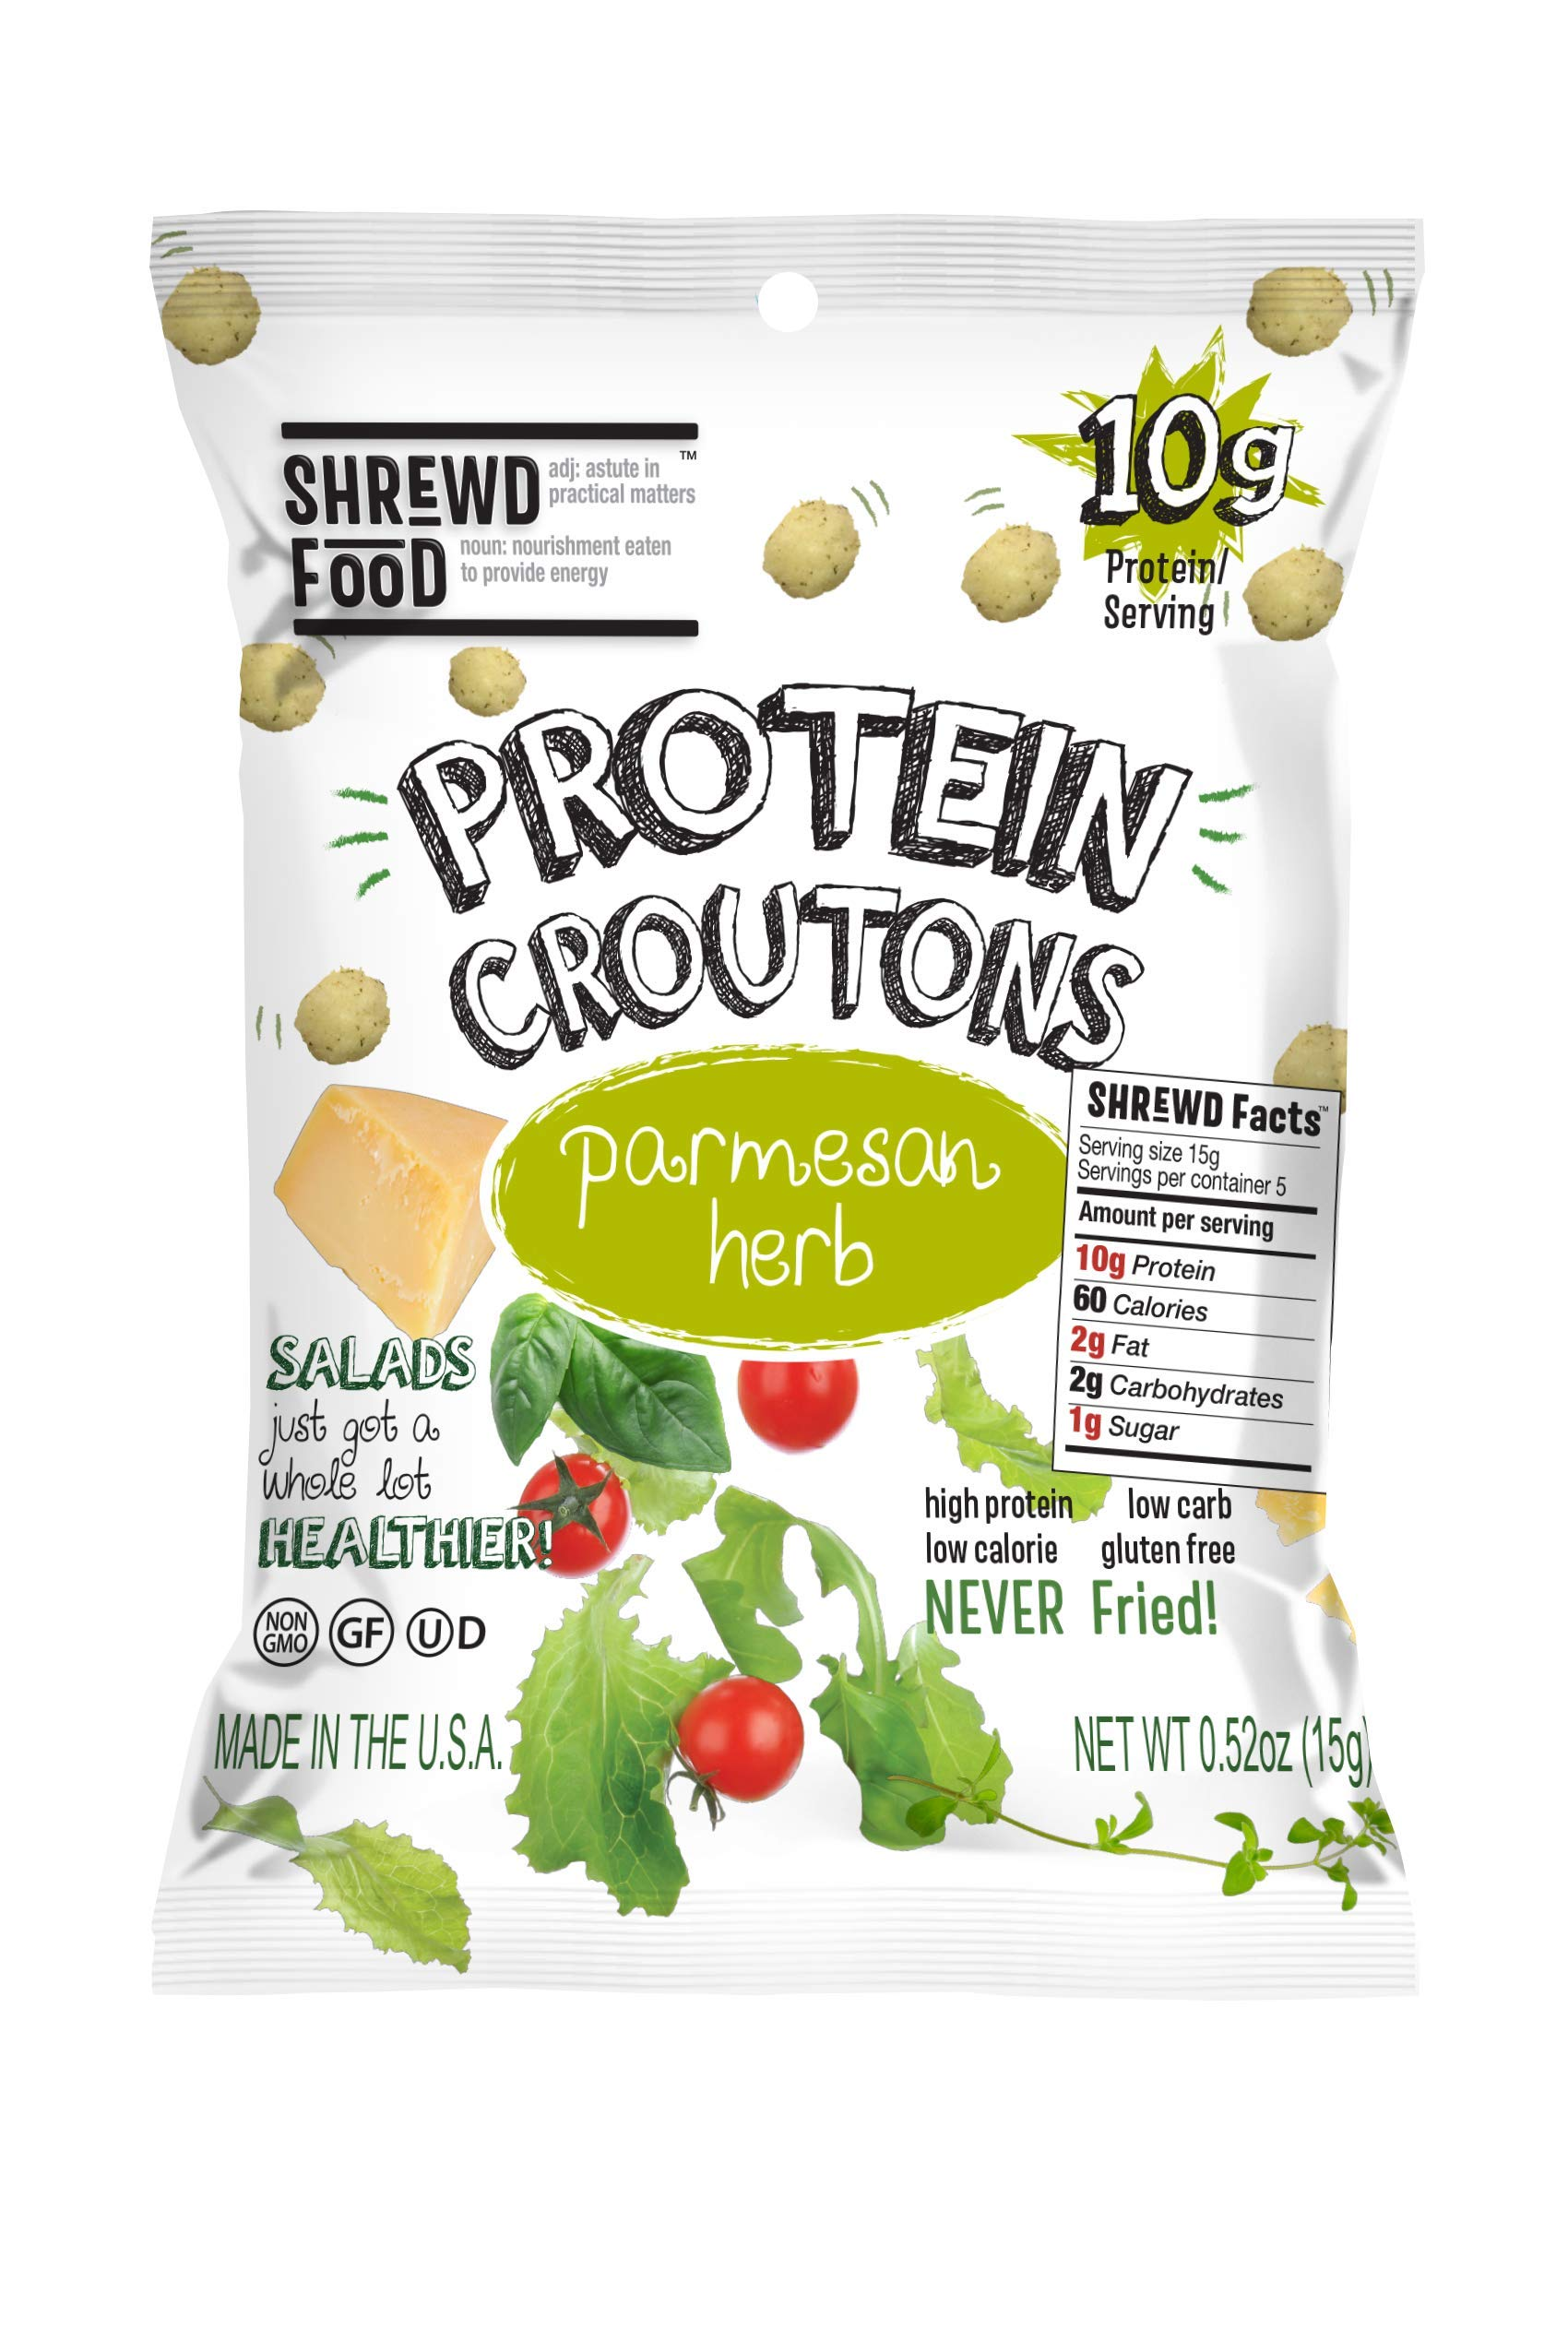 Shrewd Food Protein Keto Croutons | 10 Bags | Parmesan & Herb Protein Croutons for Salads | High Protein, Low Carbs